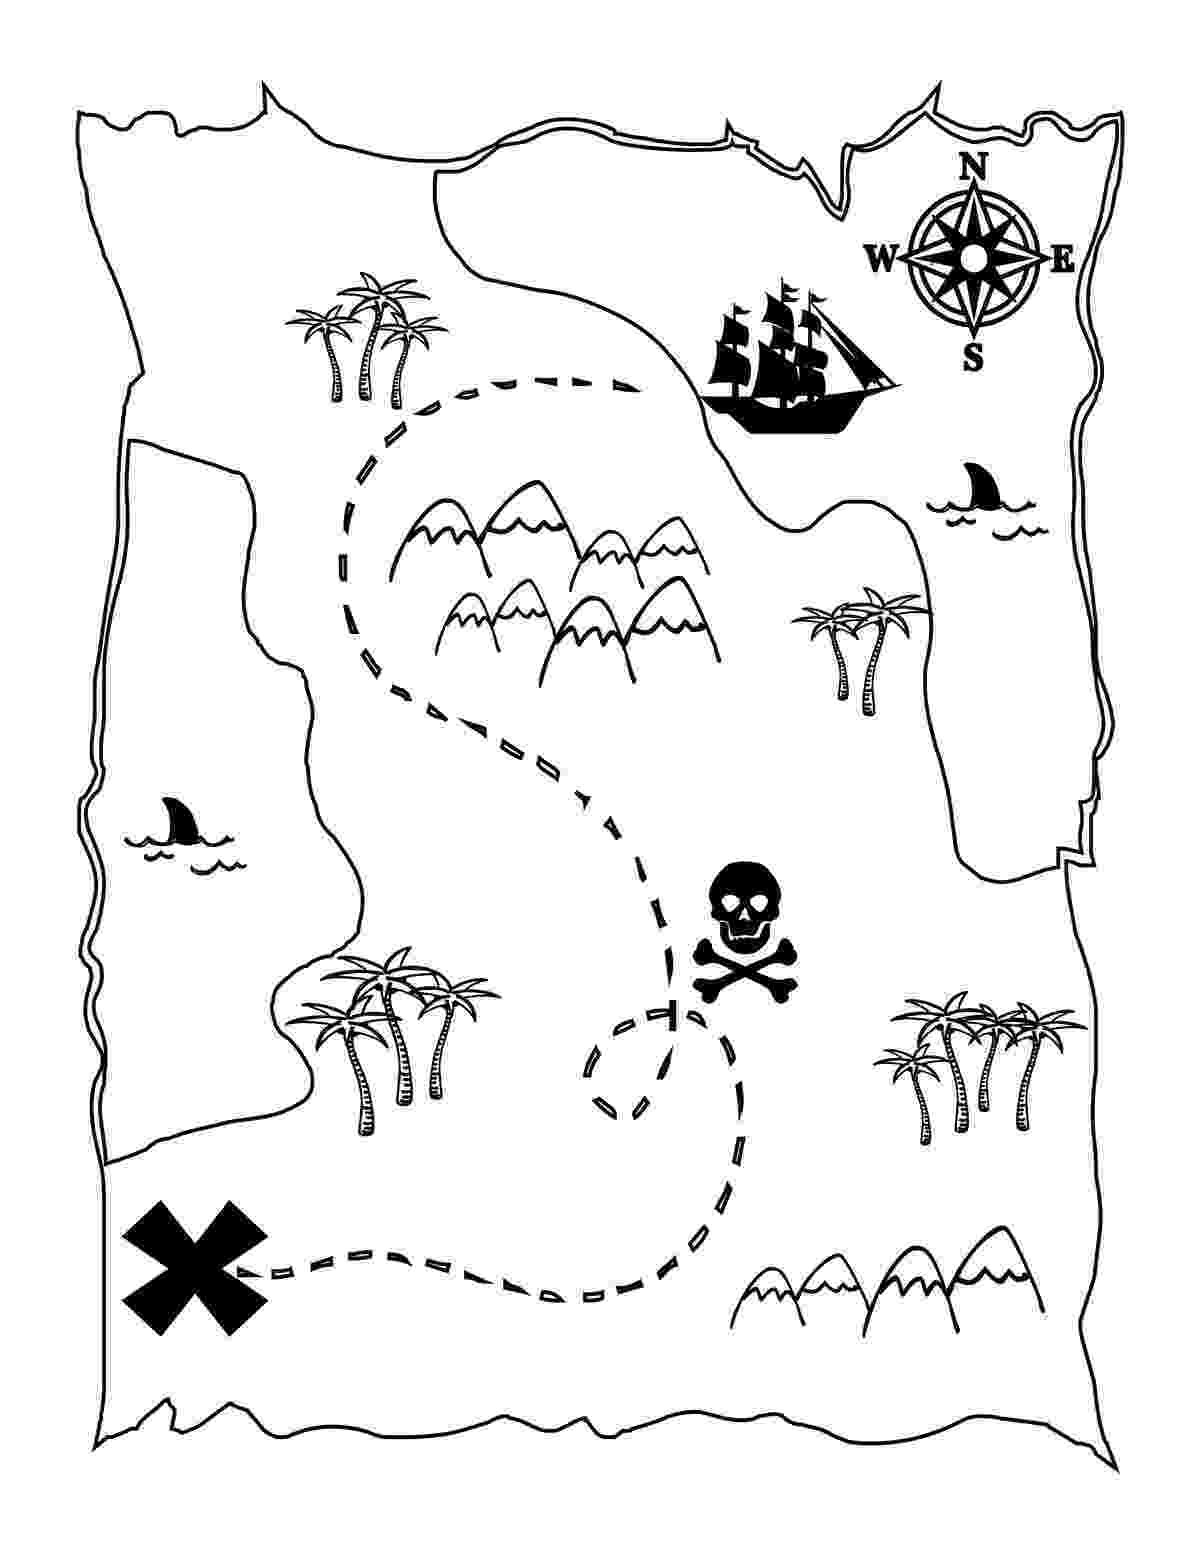 coloring map free printable world map coloring pages for kids best map coloring